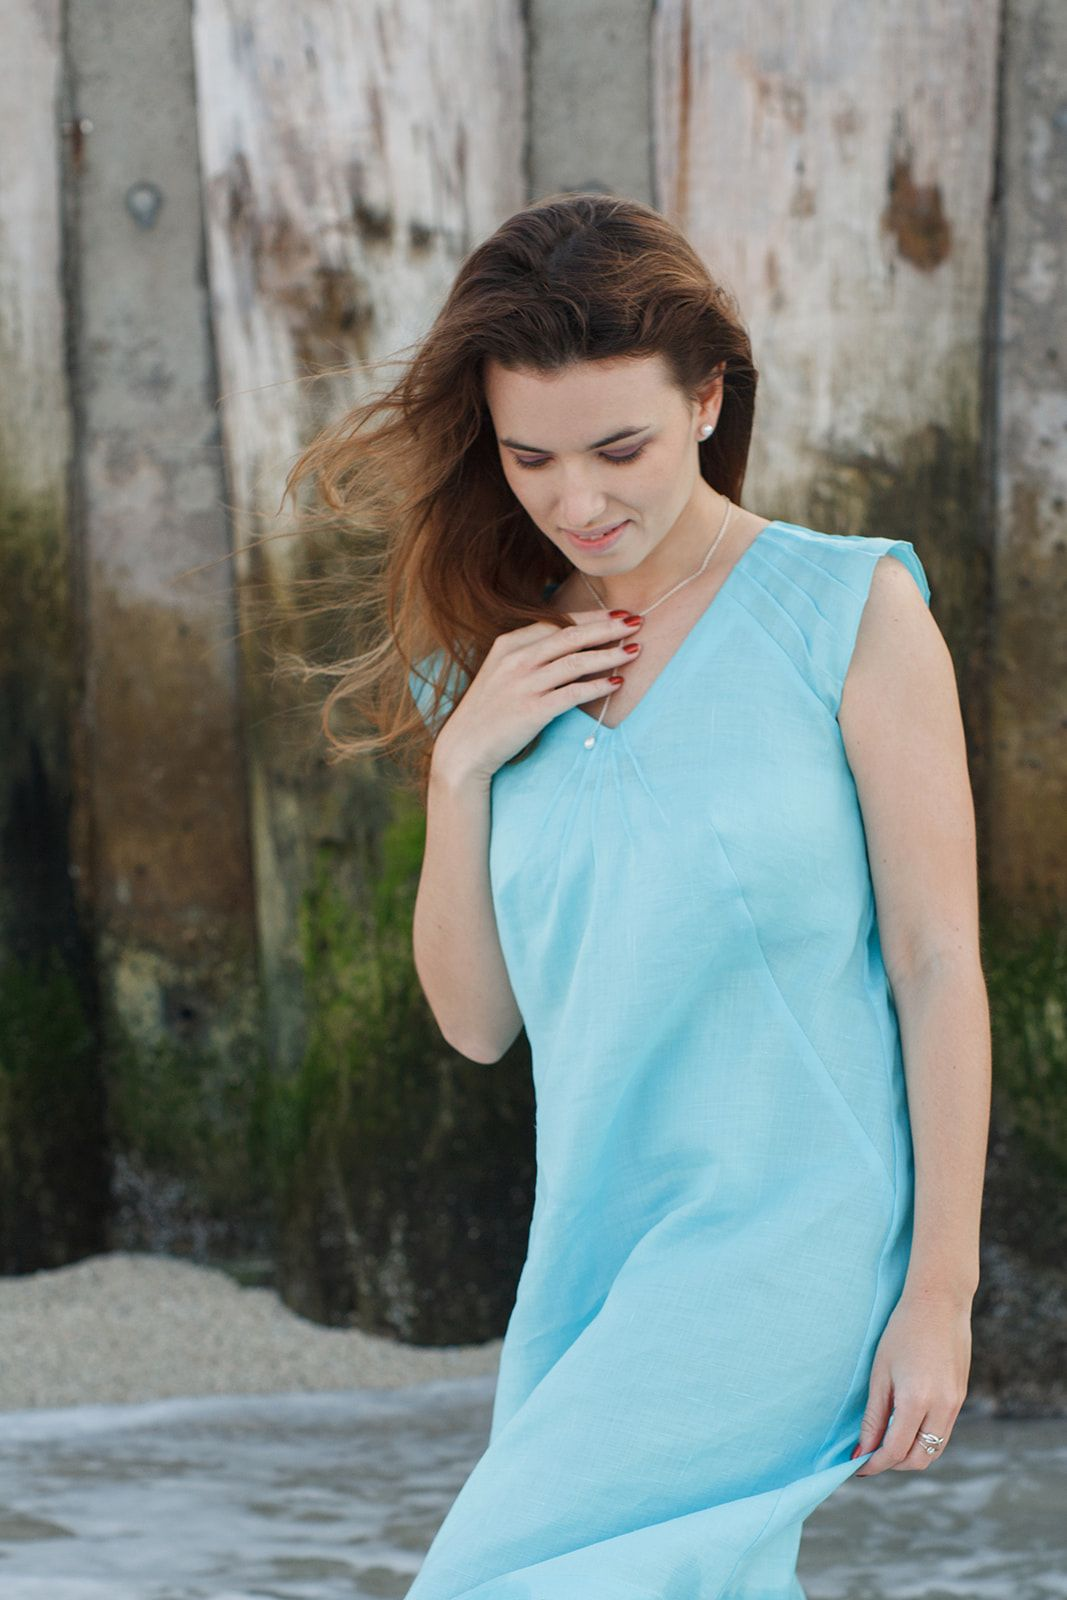 cd6d504e5b ... Eco-friendly clothing by Dressarte Paris. Effortless summer style that  you can wear on vacation and in the city. The dress